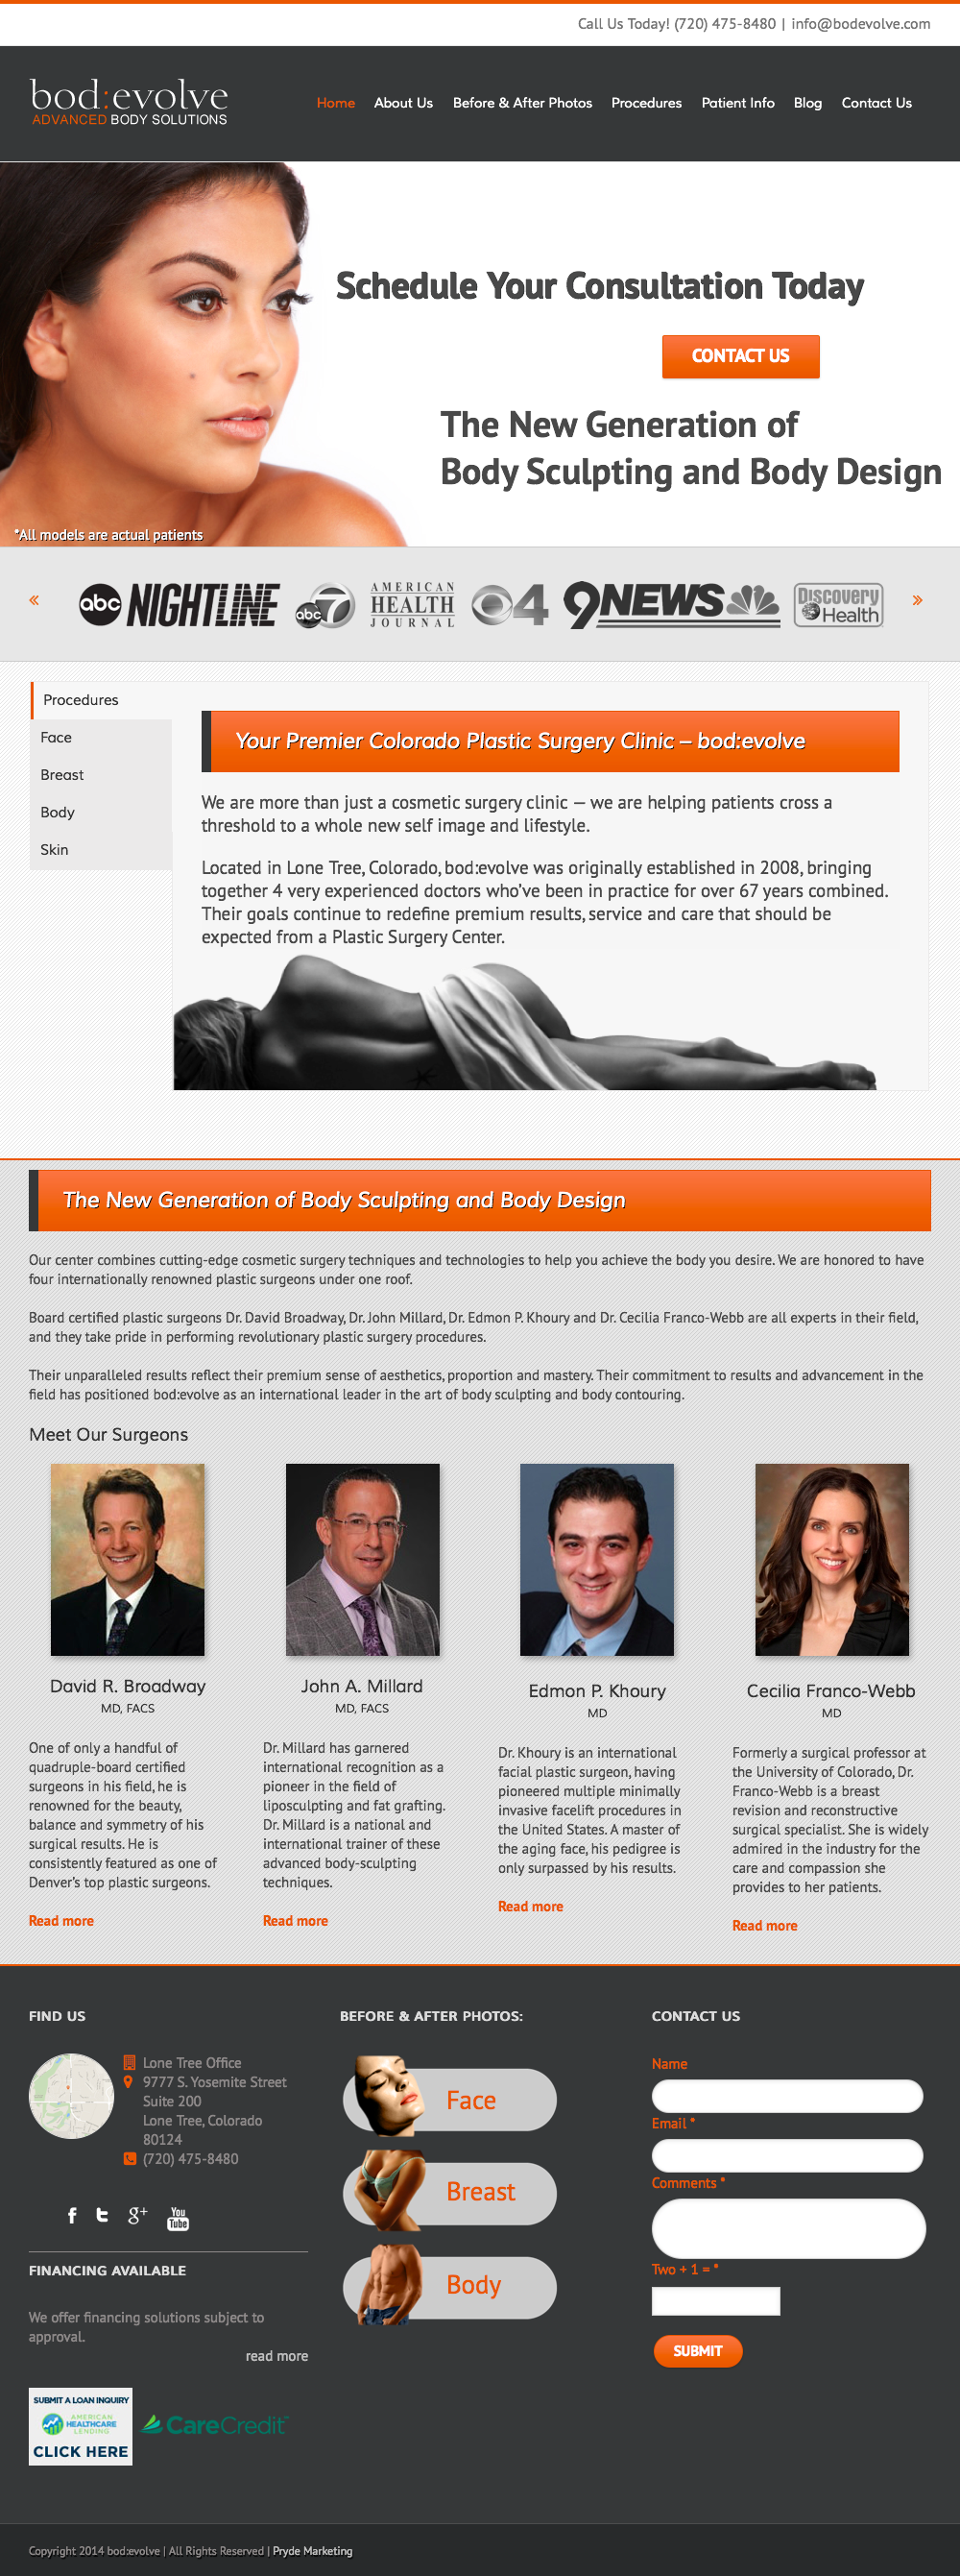 bod-evolve Home page